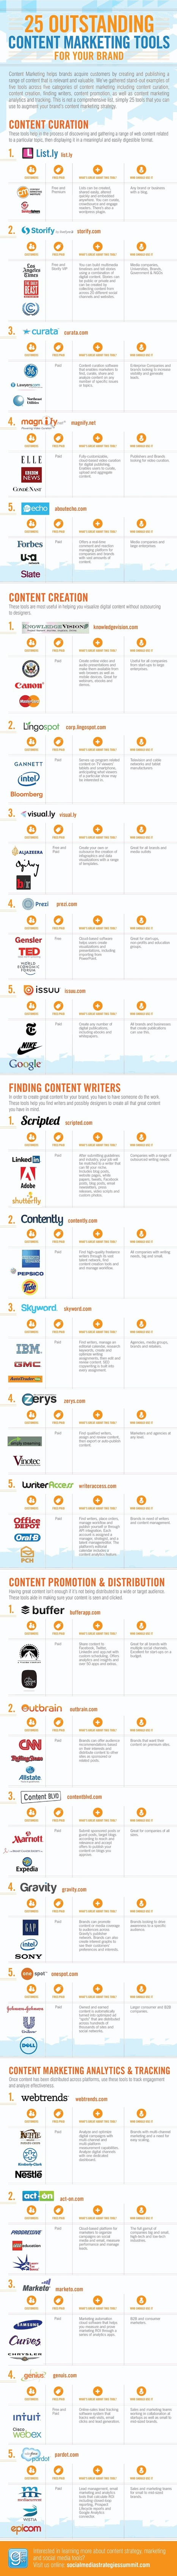 25 Excellent Content Marketing Tools for Your Brand | Pamorama | Blogs and influencers worth checking | Scoop.it